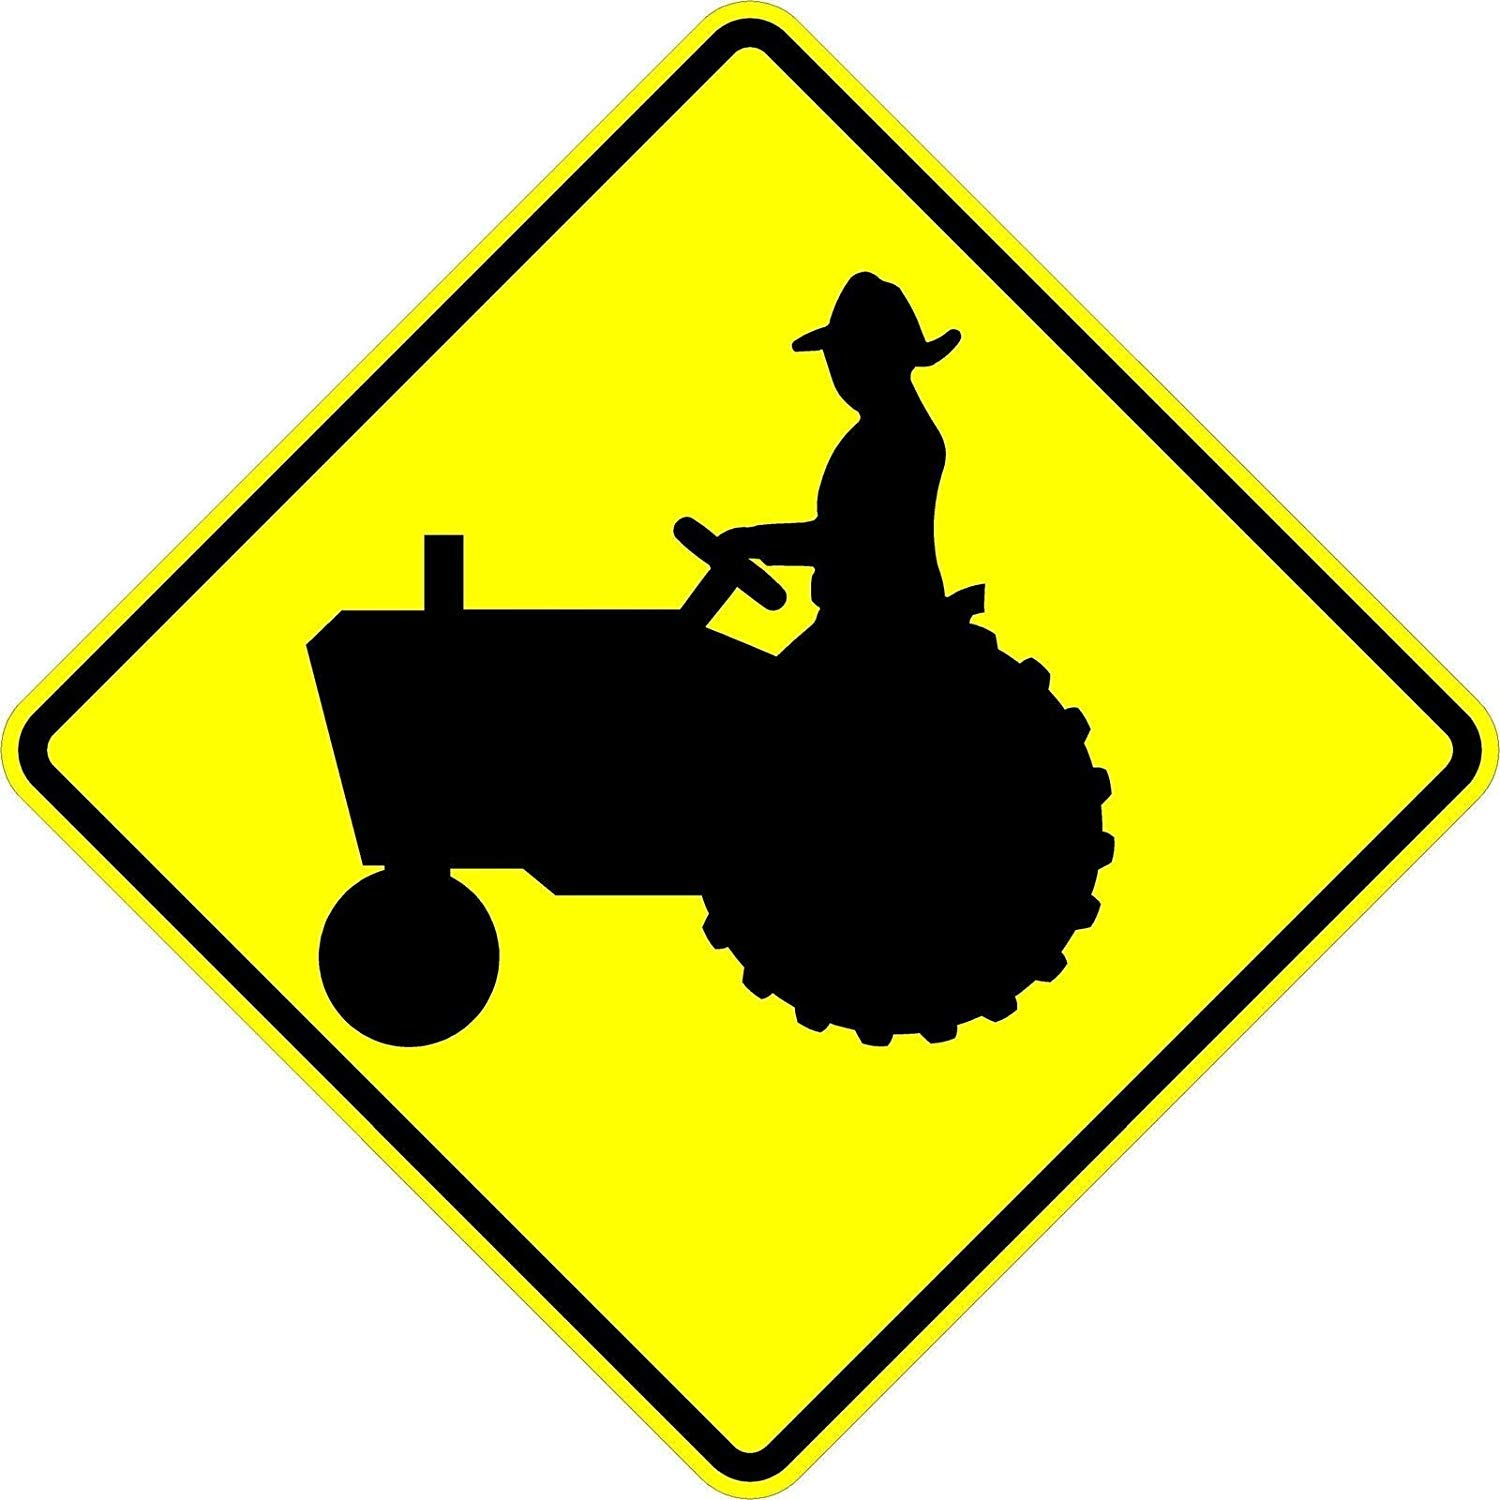 Tractor crossing sign - 24 x 24 Warning Sign. A Real Sign. 10 Year 3M Warranty